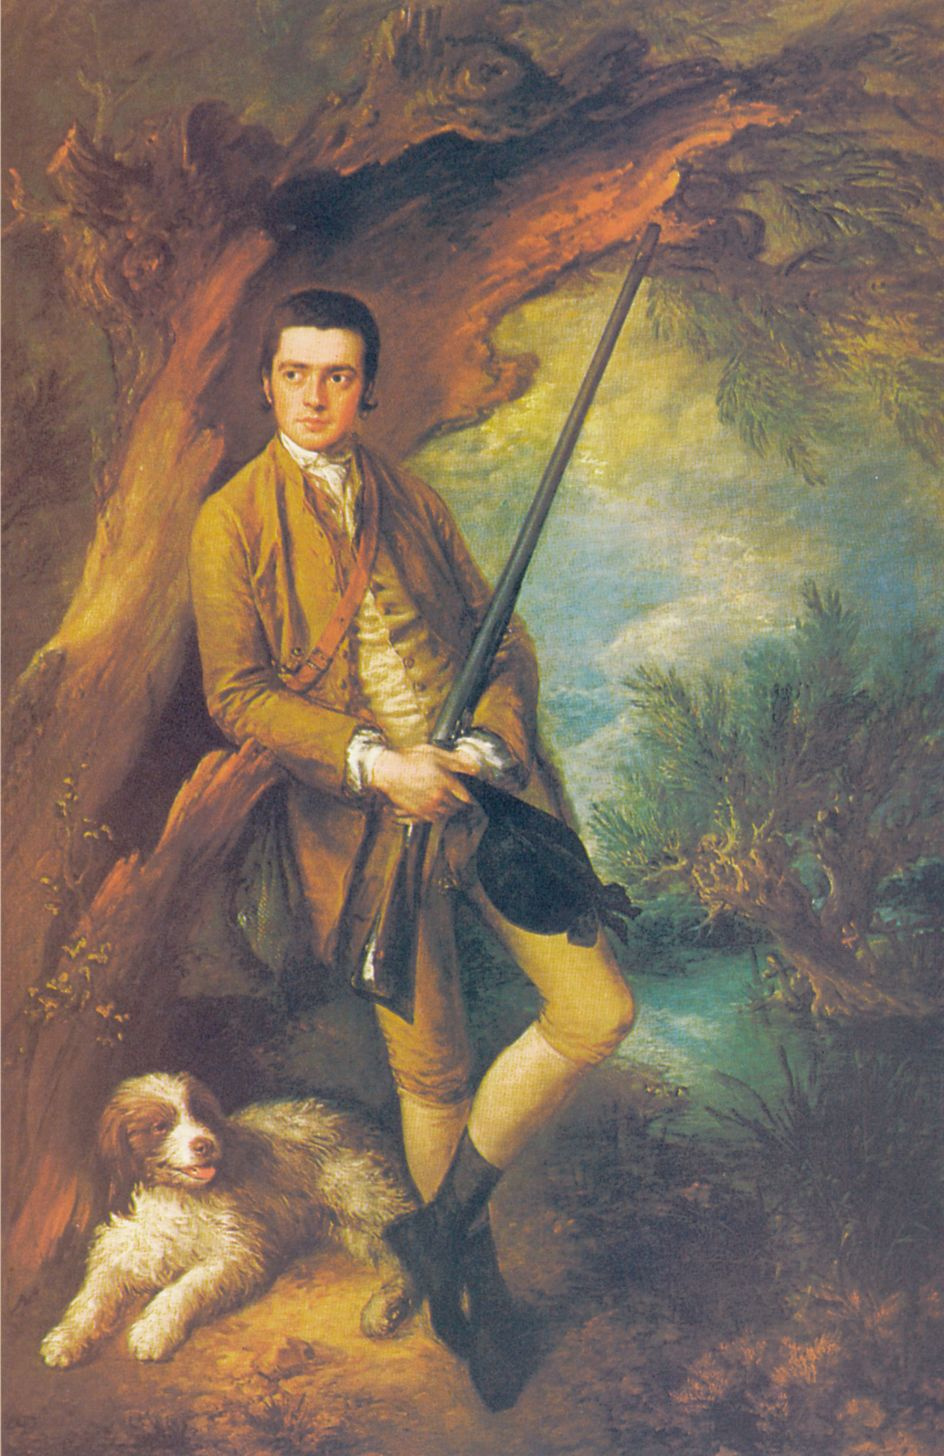 Thomas Gainsborough. William the point of Midgham and his dog amber